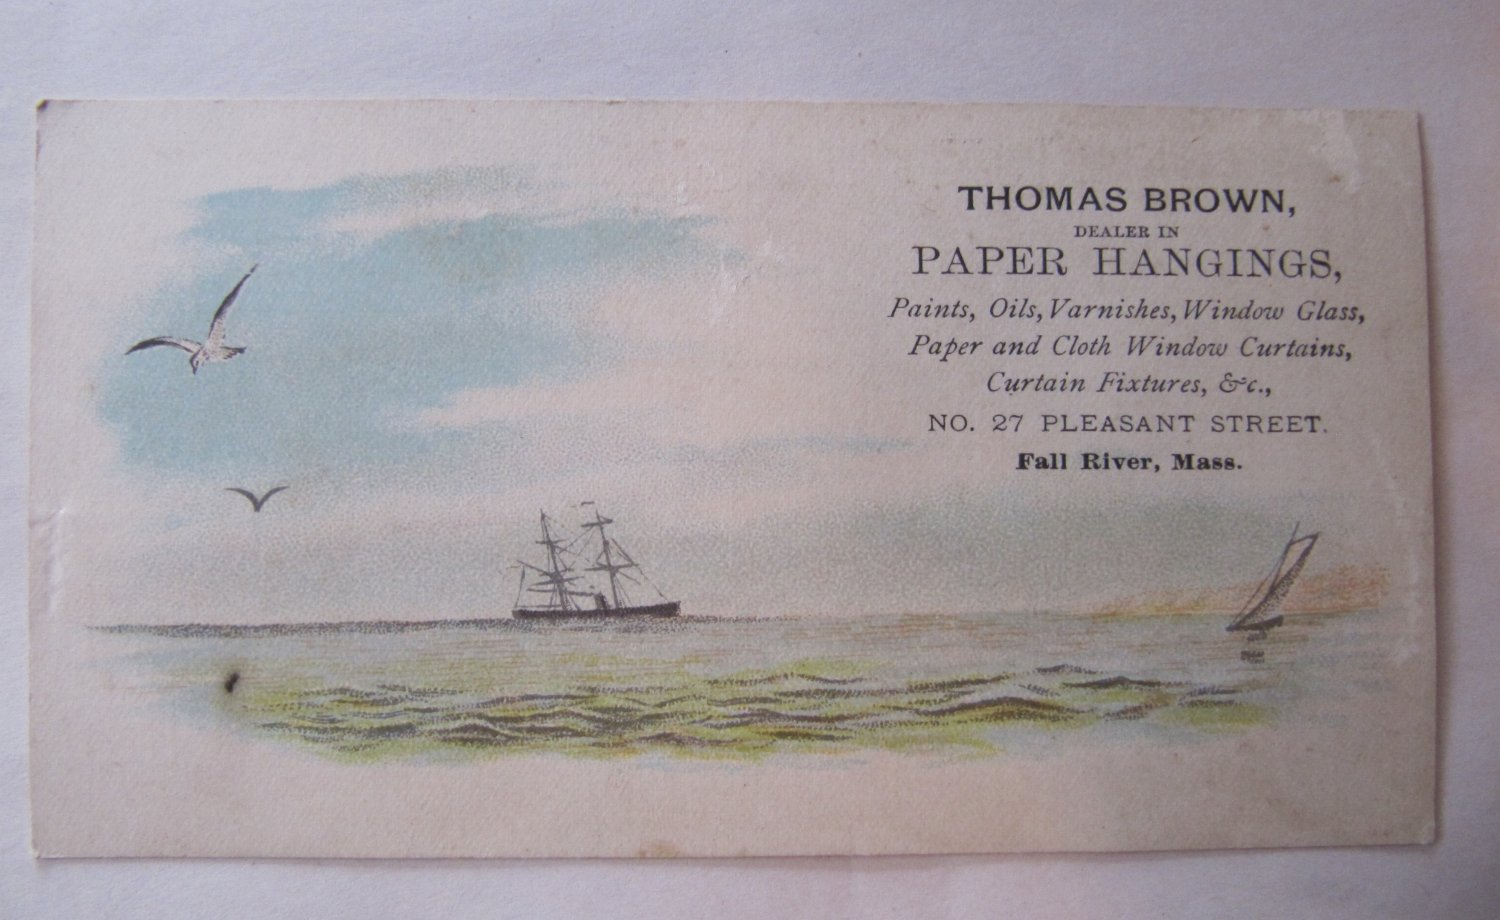 Rare c 1880s Antique Victorian Business Trade Card Thomas Brown Paper Hangings Fall River Tall Ship